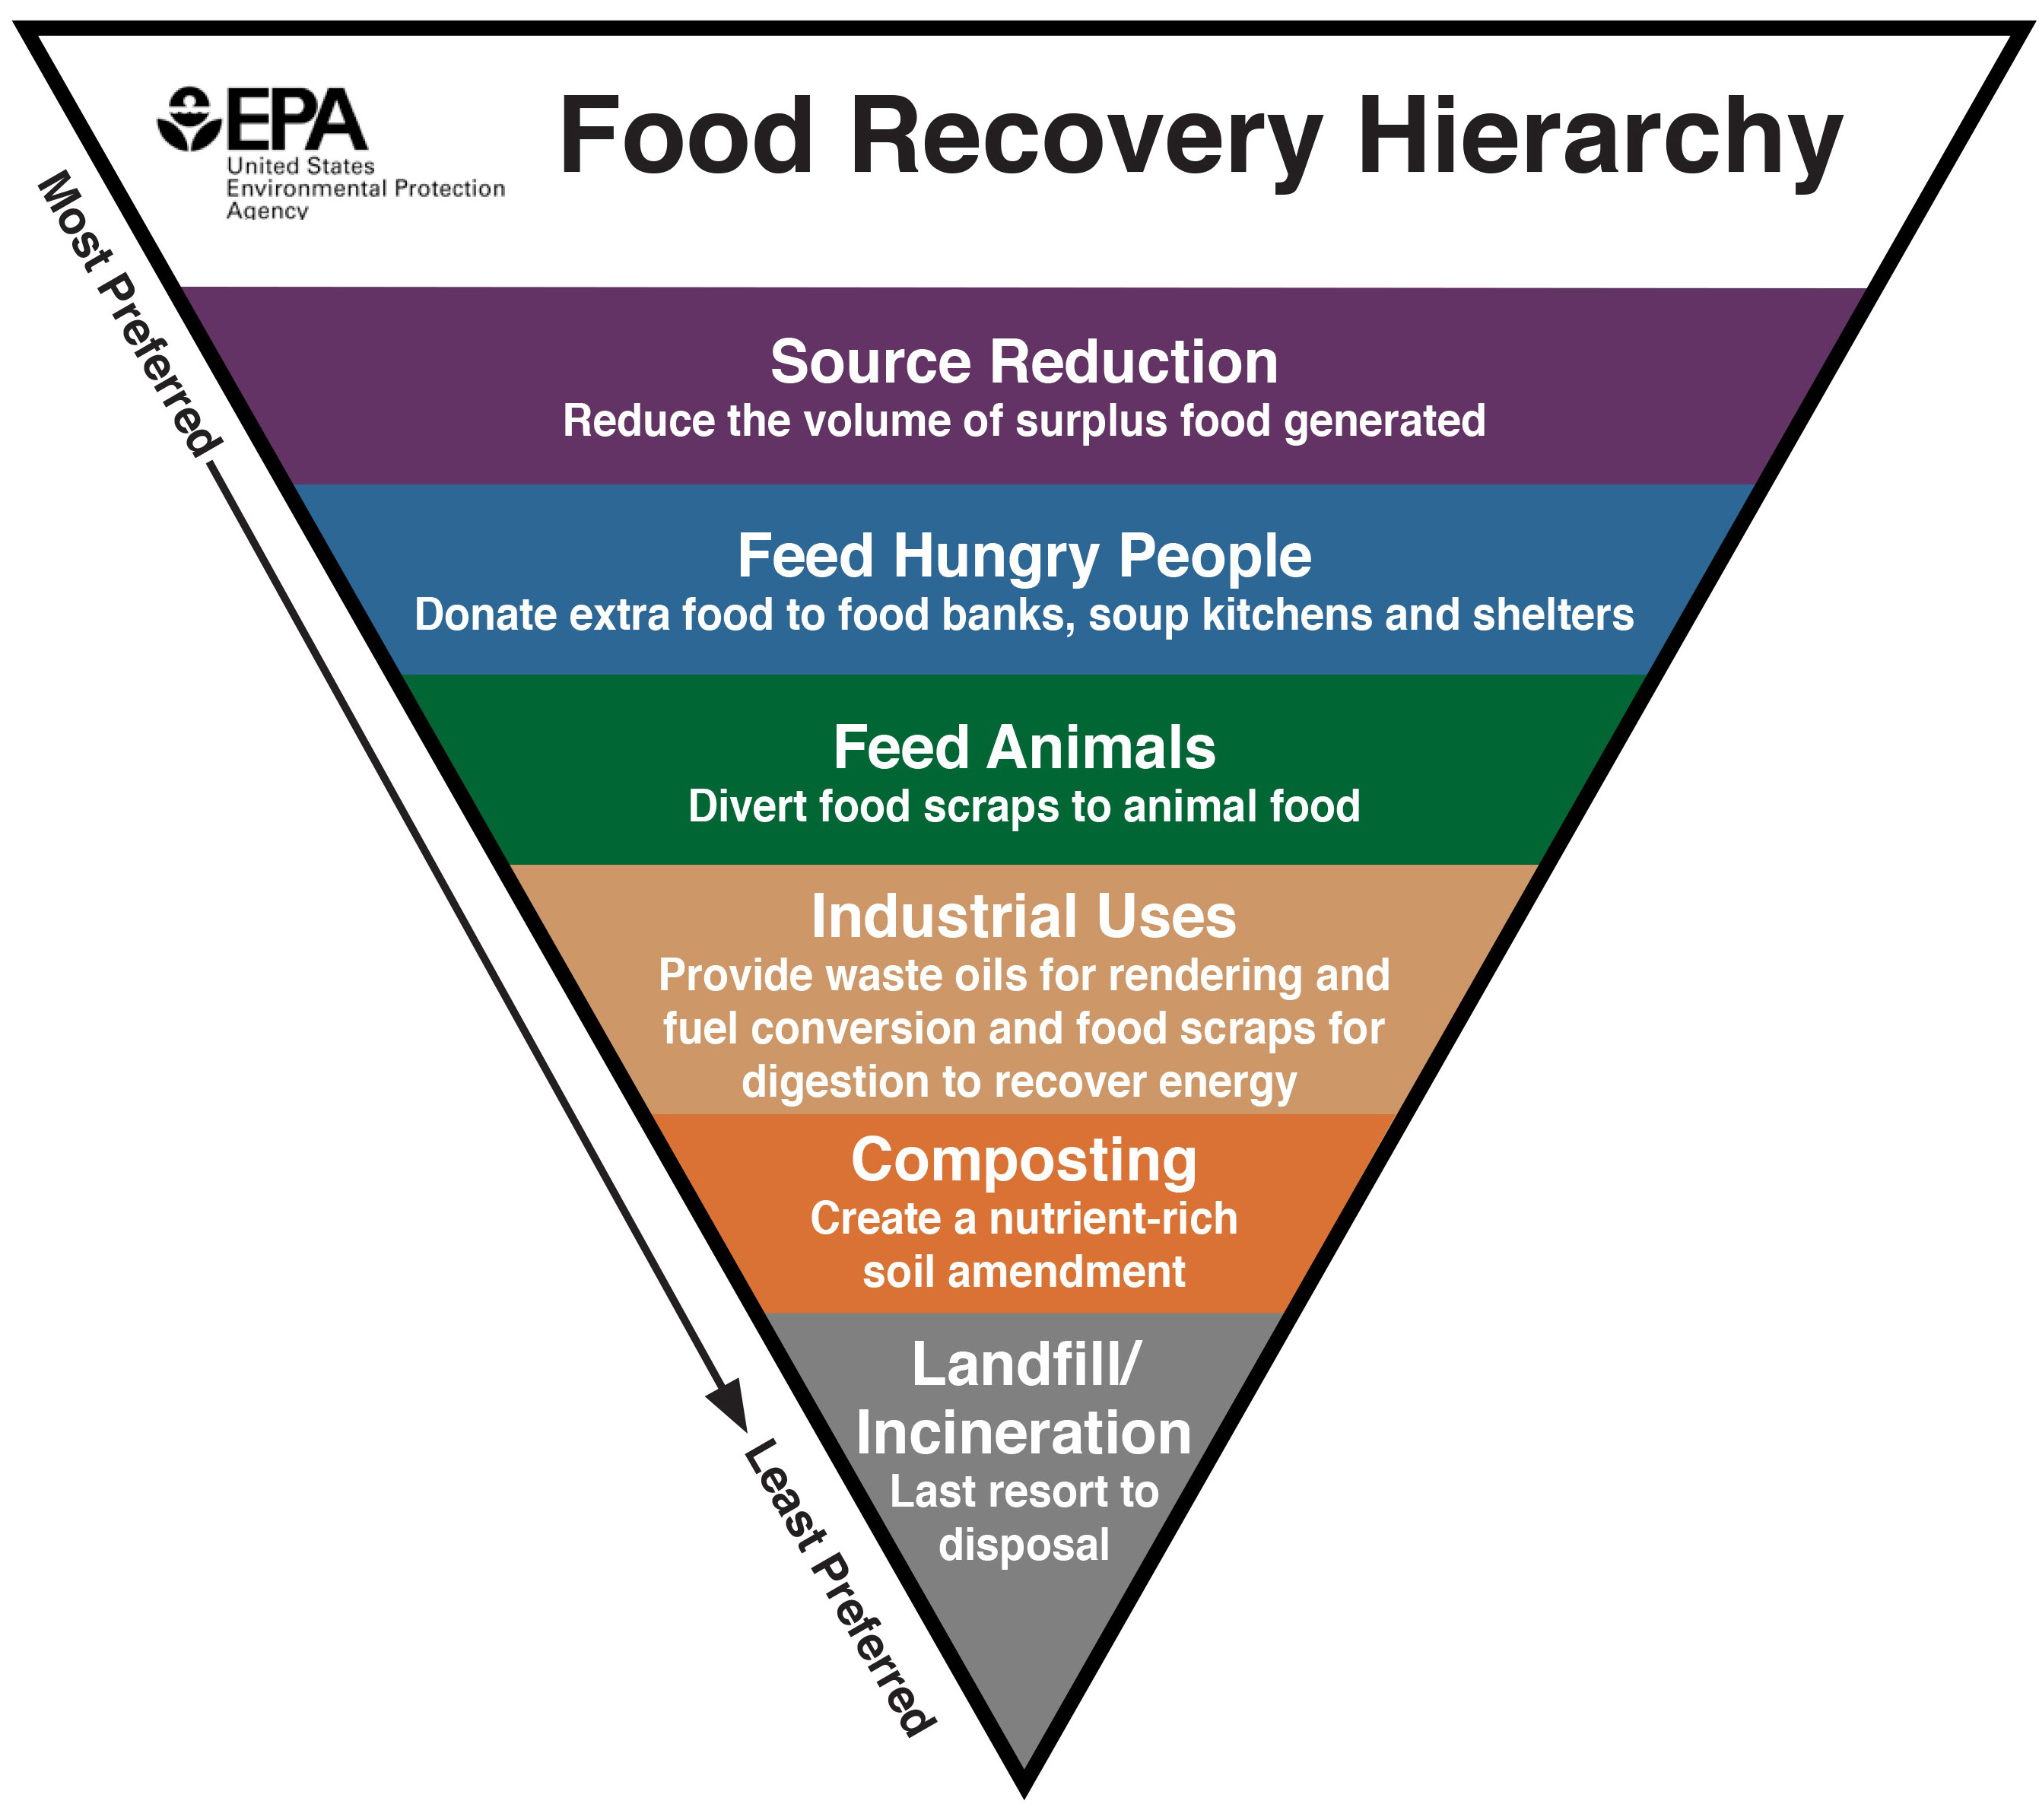 Food Recovery Hierarchy Triangle in Six Steps. Top (most preferred) to bottom (least preferred): Source Reduction, Feed Hungry People, Feed Animals, Industrial Uses, Composting, and Landfill/Incineration.